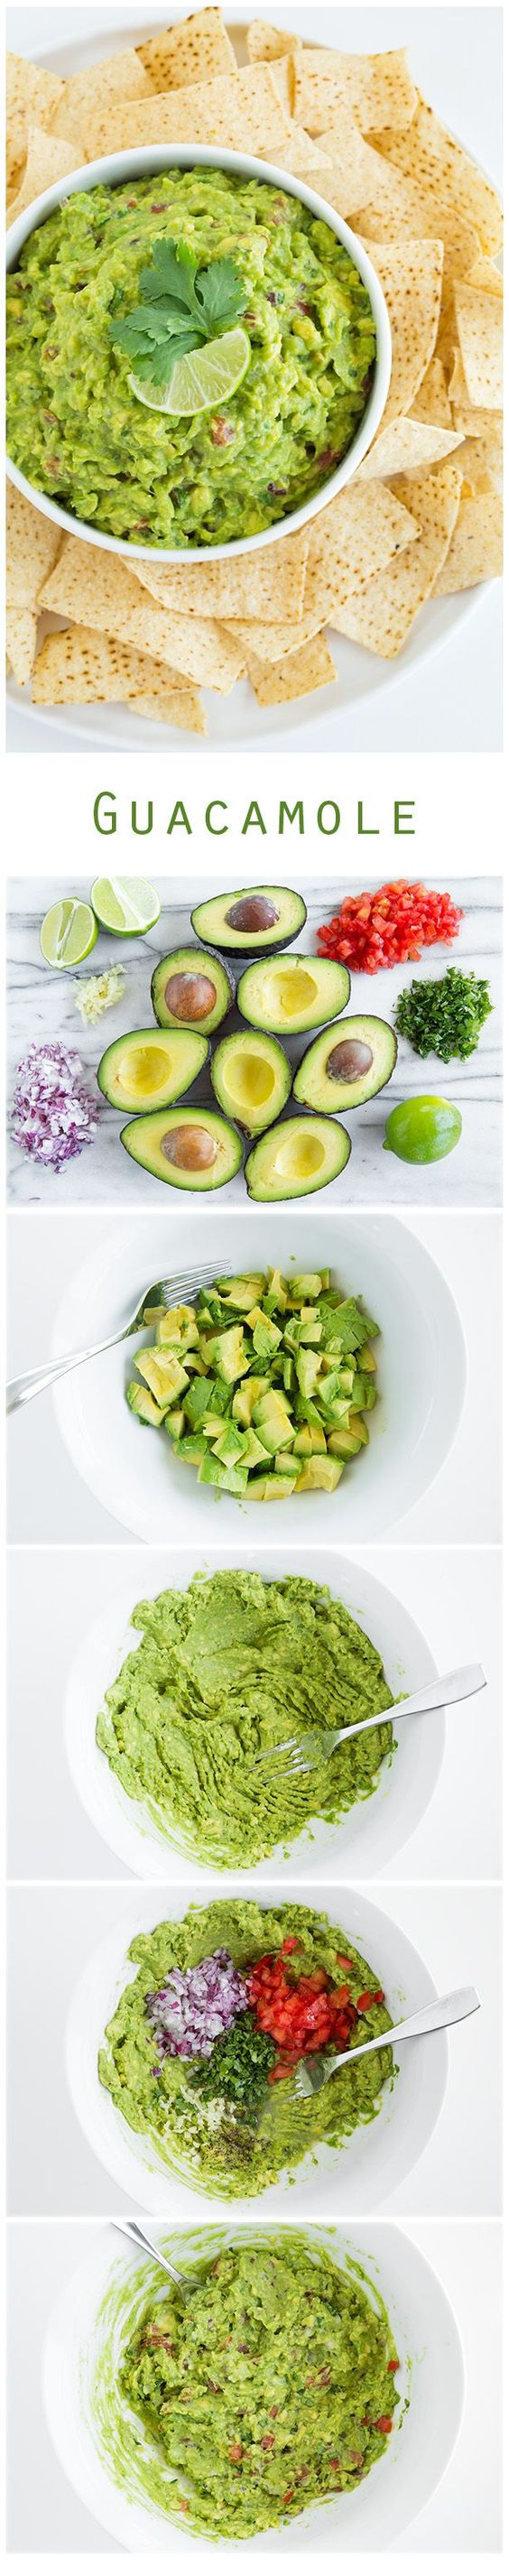 Guacamole - the only guacamole recipe you'll ever need! LOVE it!: